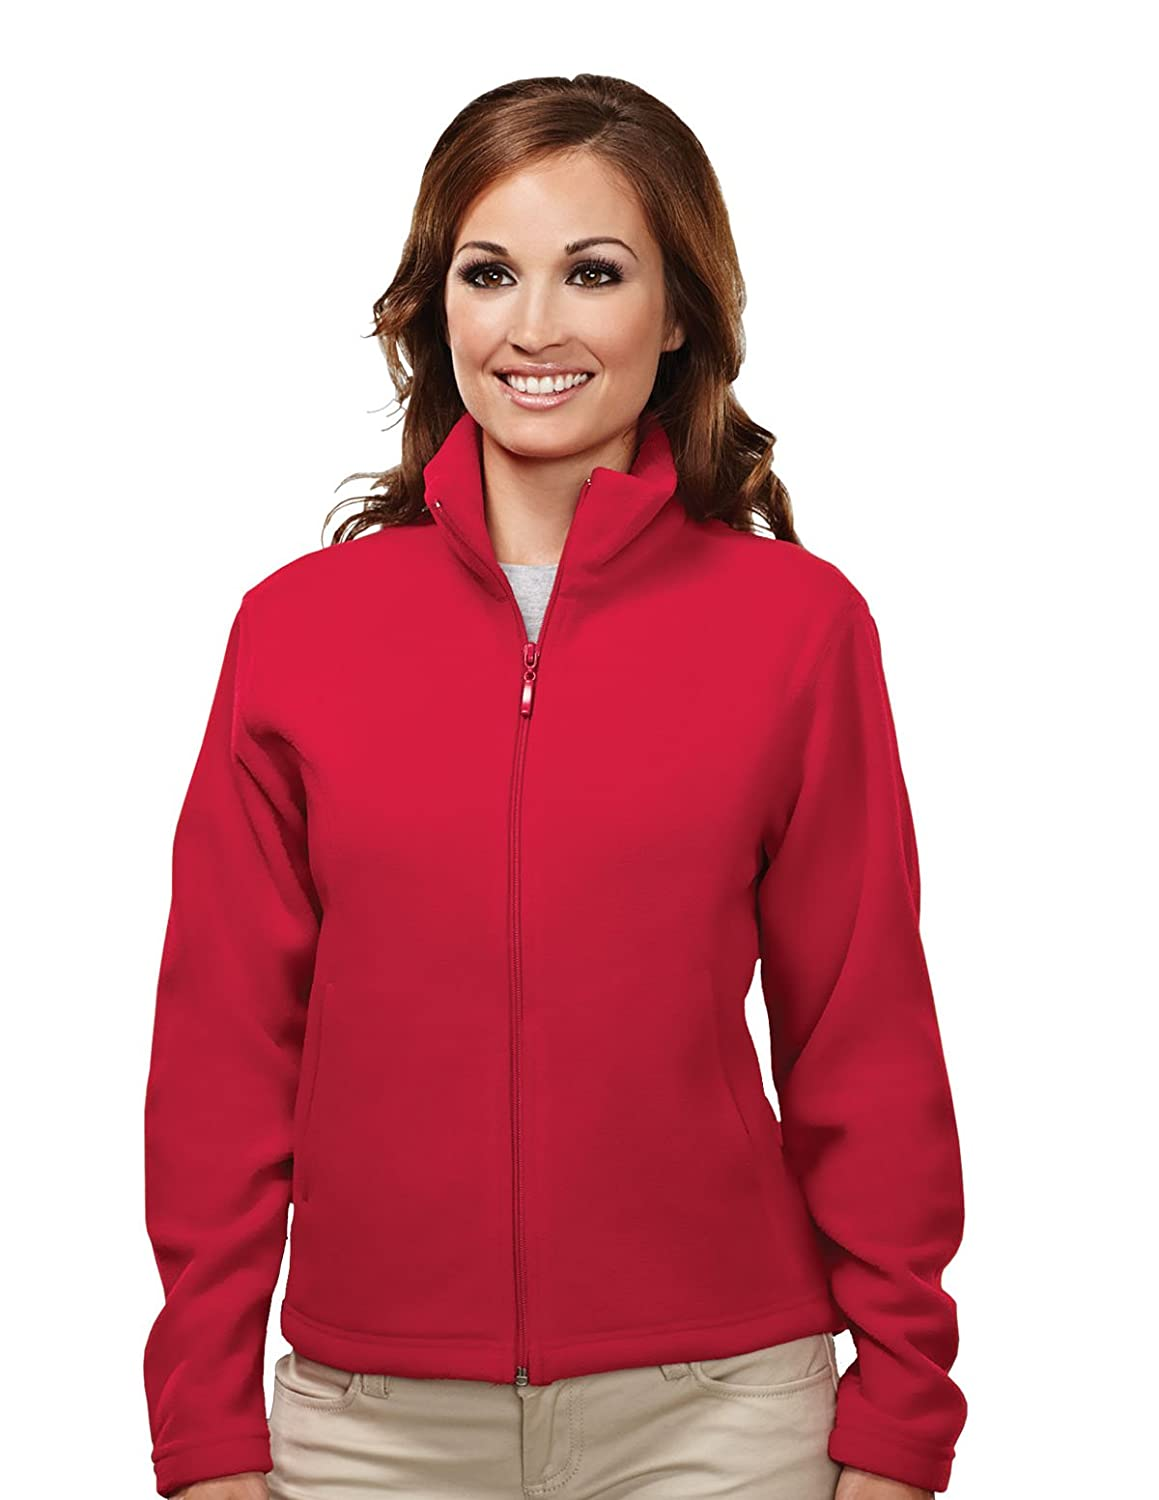 Womens Polyester Windsor Tailor Fit Anti-Pilling Micro Fleece Jacket (11 Colors) 7120